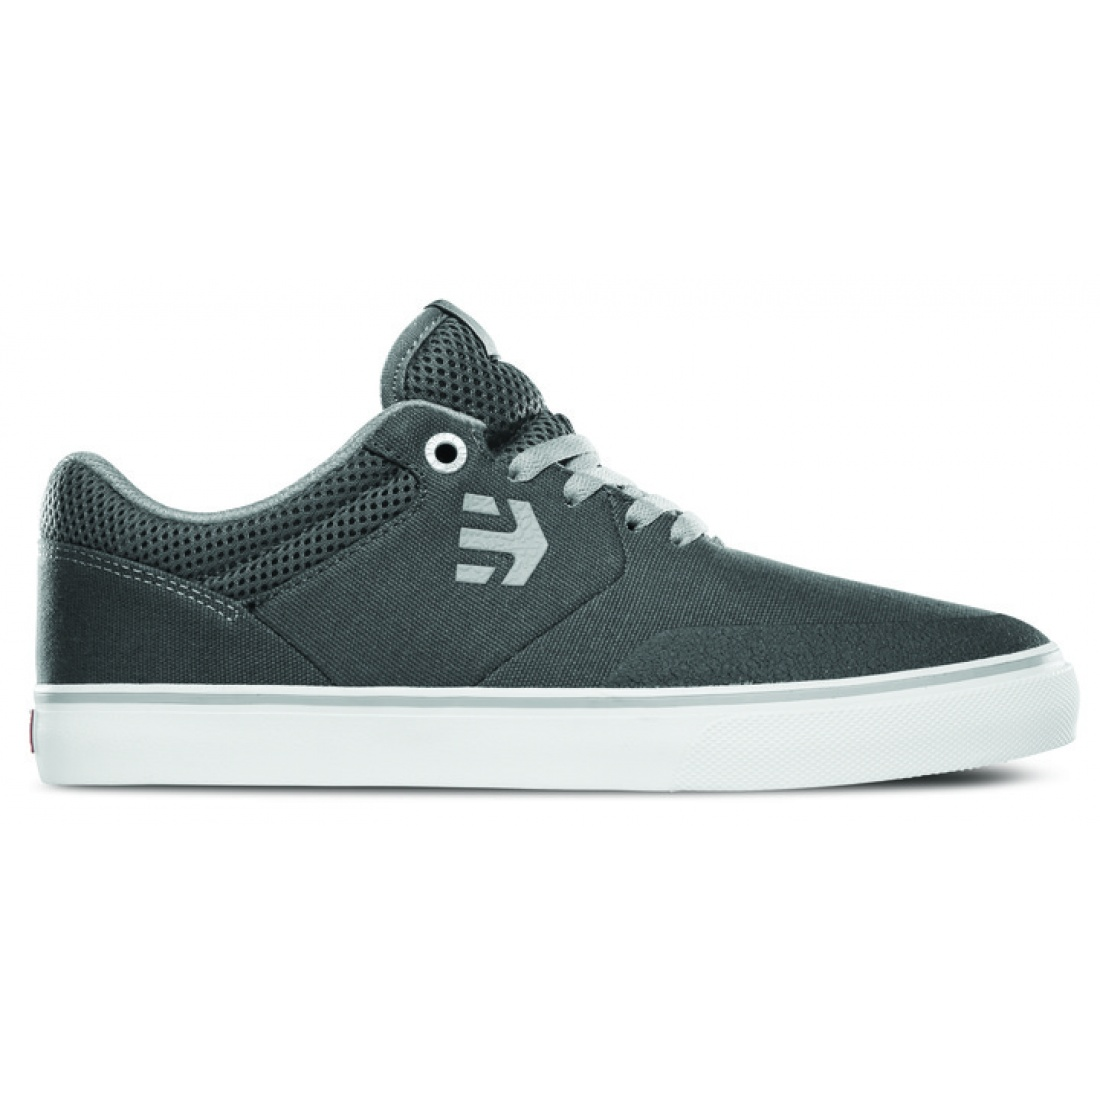 ETN-Marana Vulc Grey/Light Grey Shoes